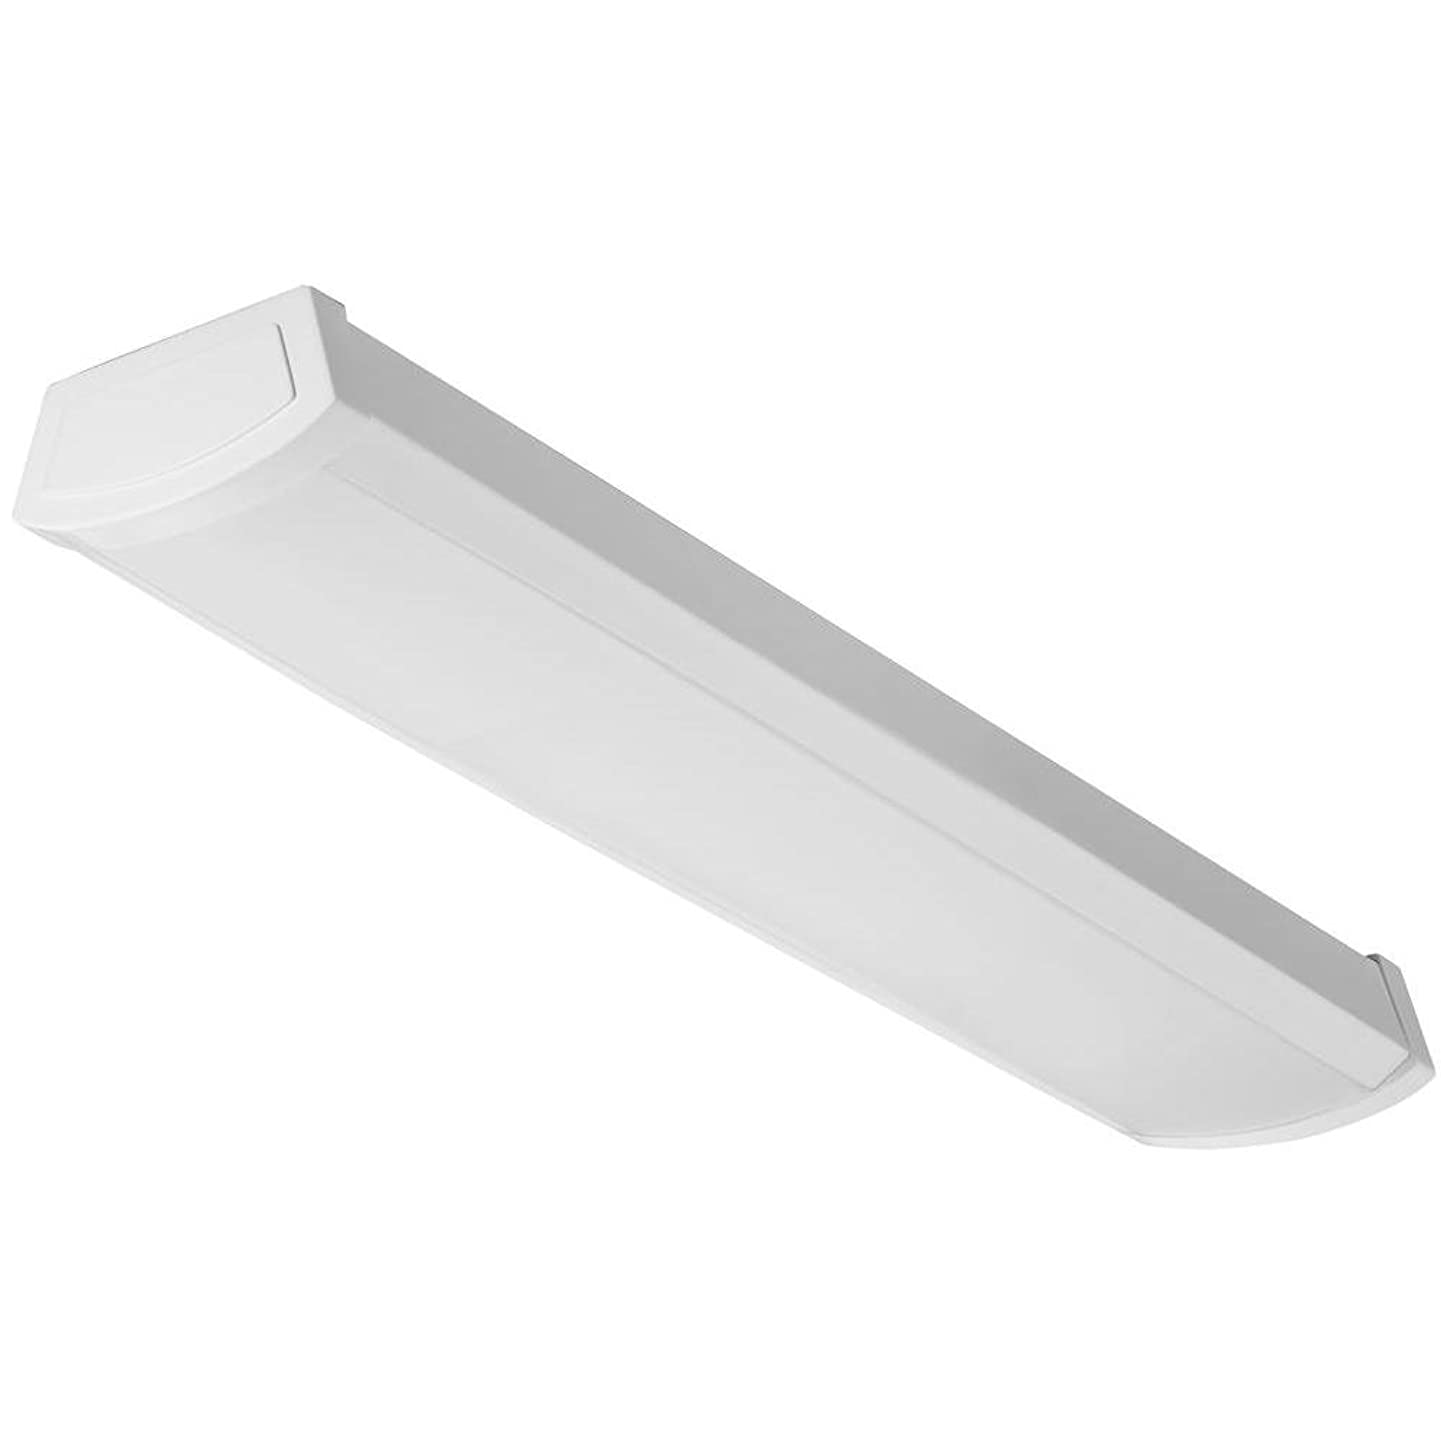 Lithonia Lighting FMLWL 24-Inch 840 Contractor Select 2-Foot Flushmount LED Wrap Ceiling Light for Garage  Home  Basement  1400 Lumens, 120 Volts, 19 Watts, Damp Listed, White